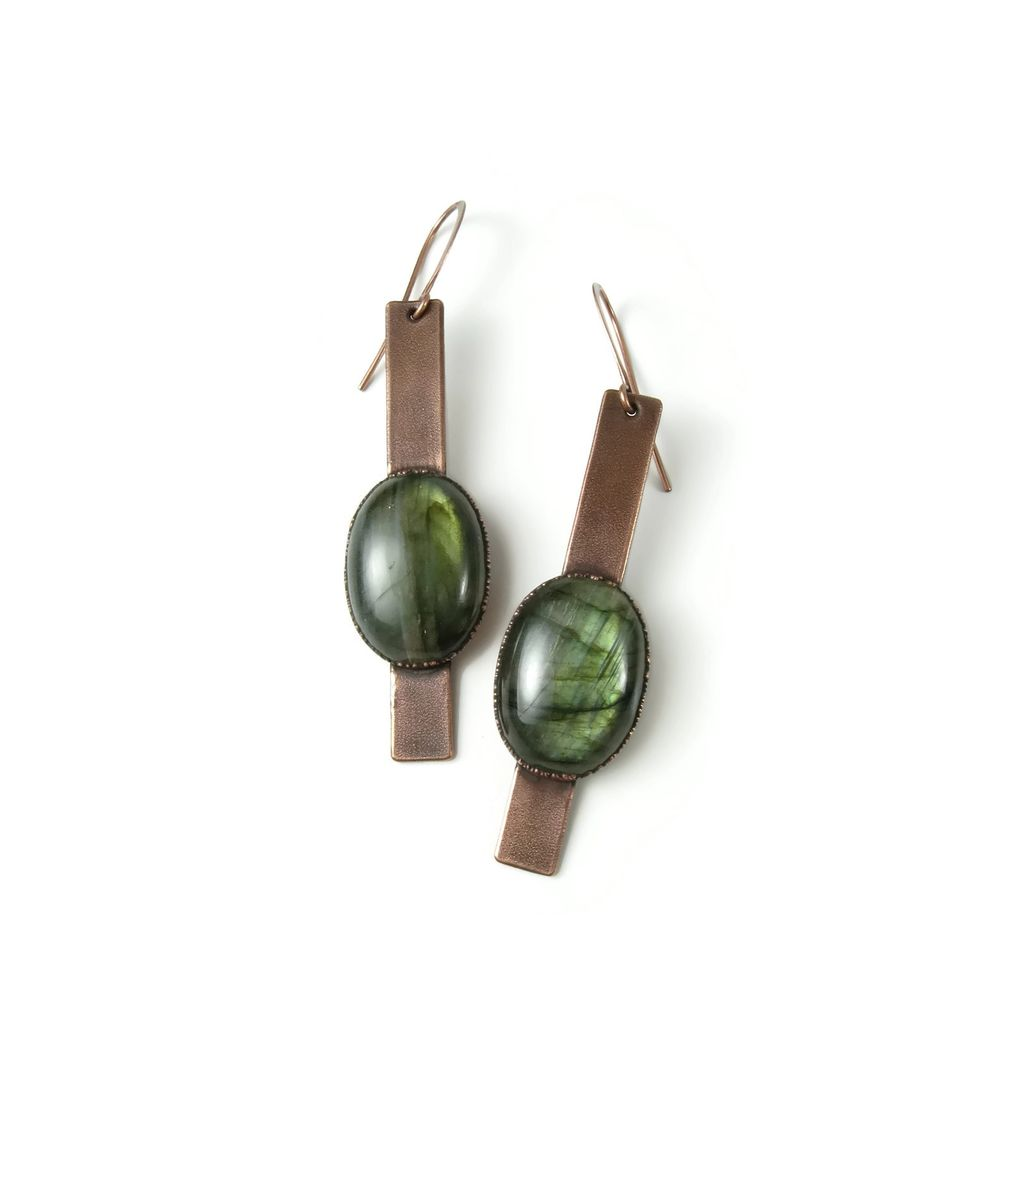 Labradorite Strap Earrings - product images  of